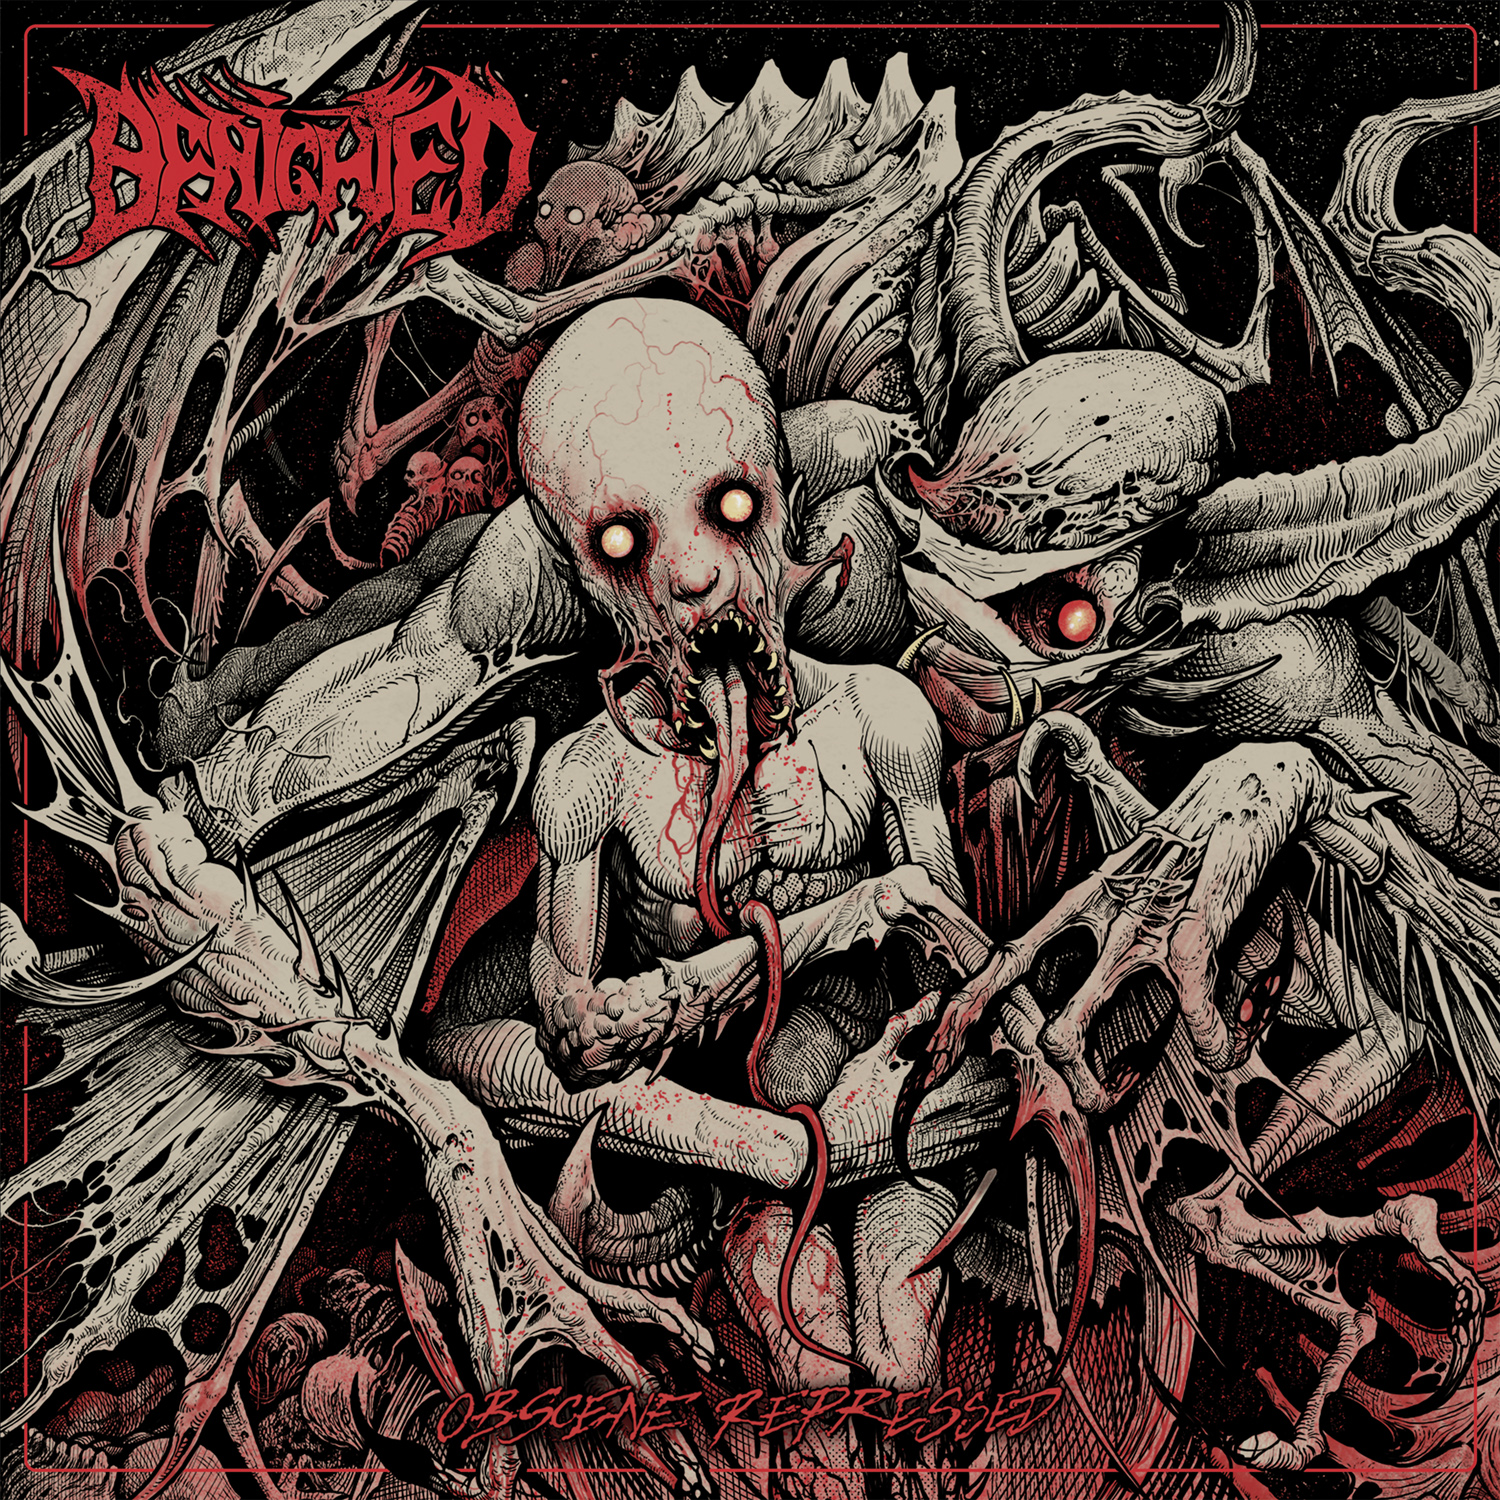 Benighted - Obscene Repressed coverart 2020